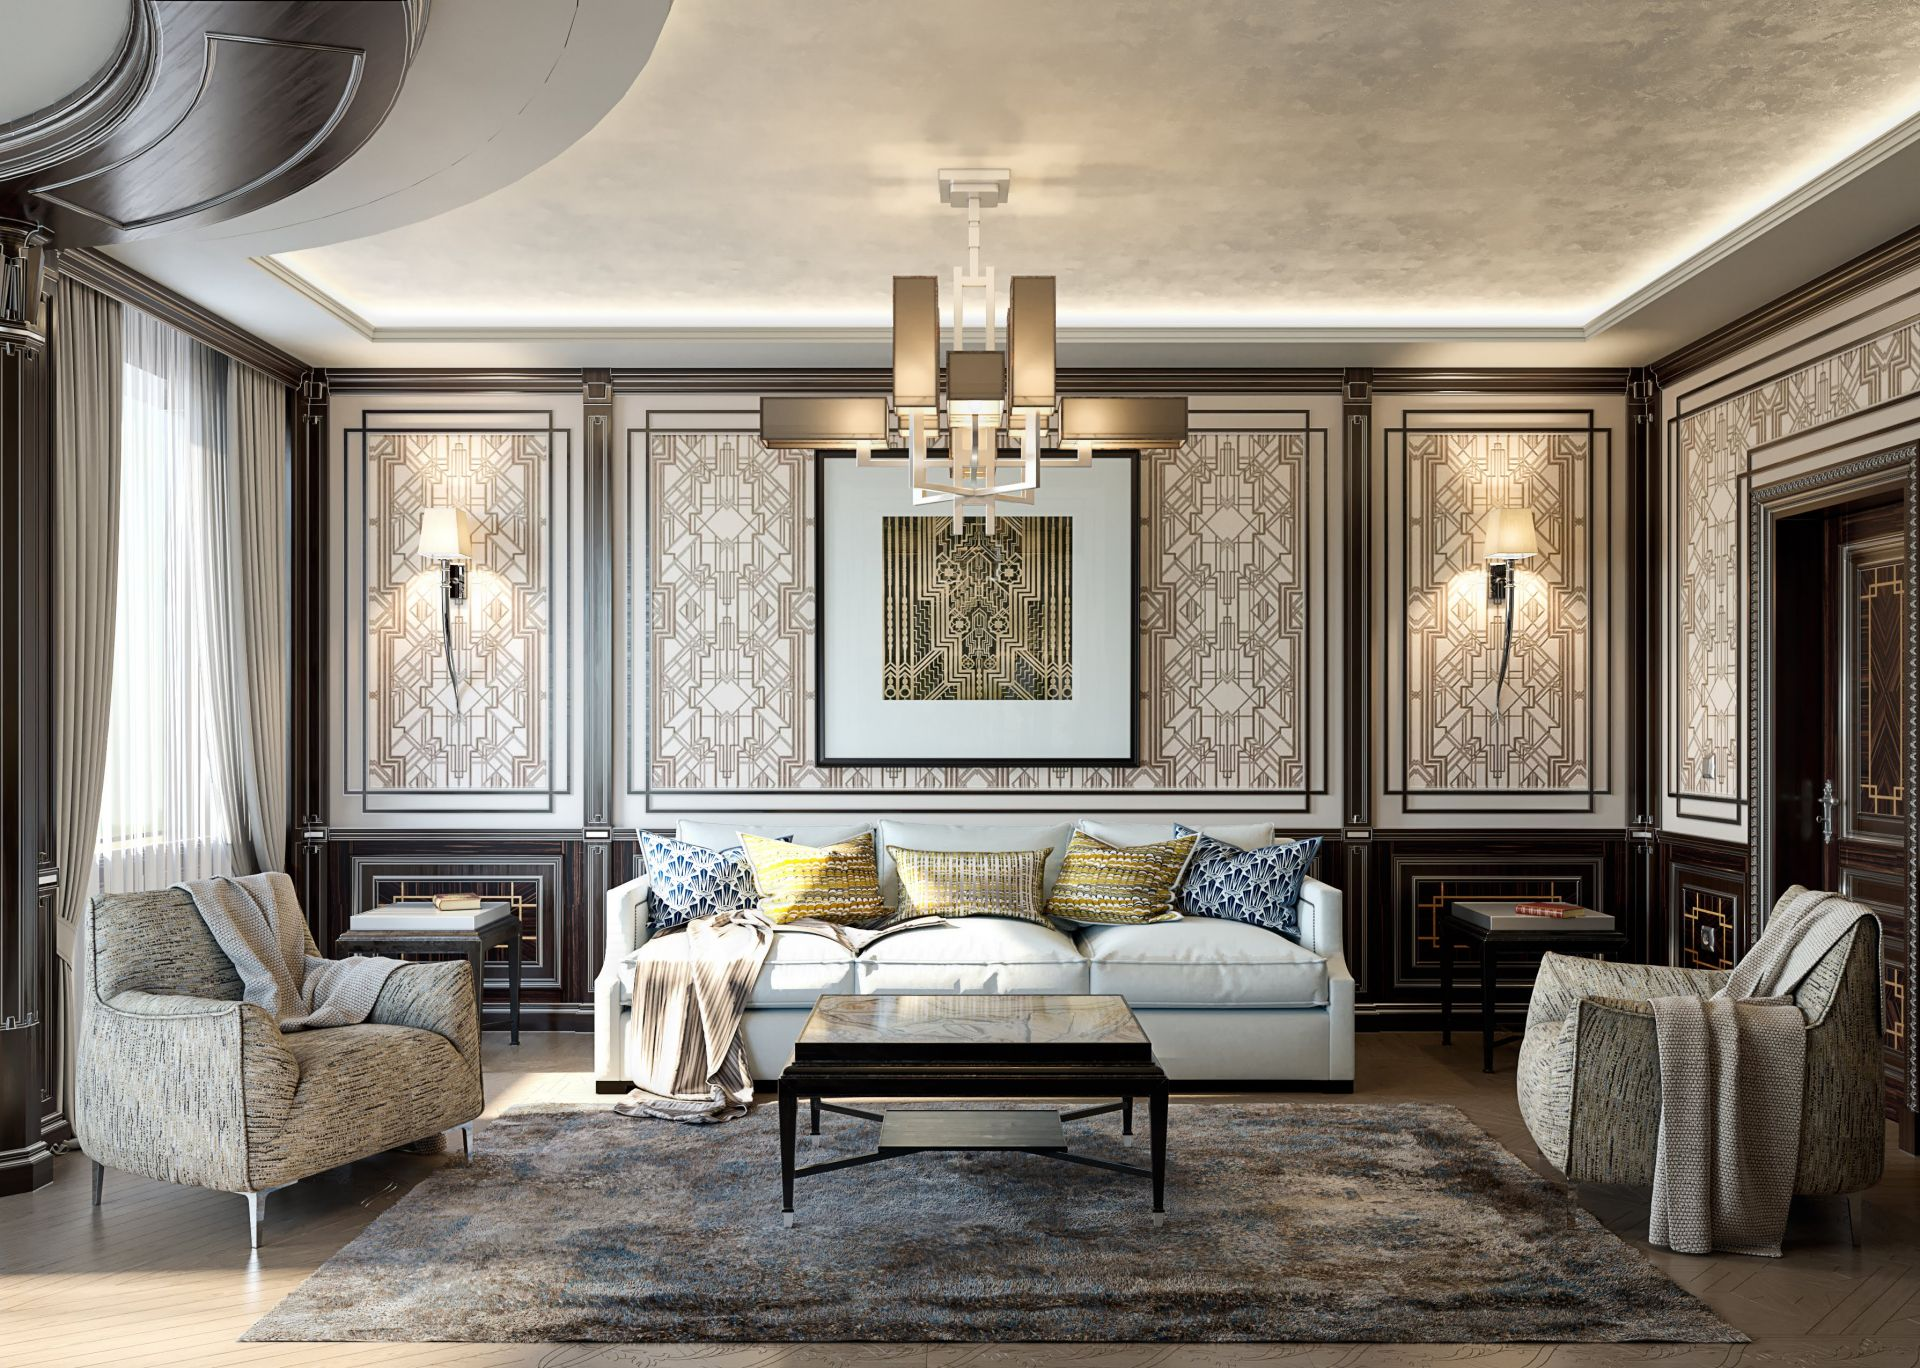 Neoclassical style living room